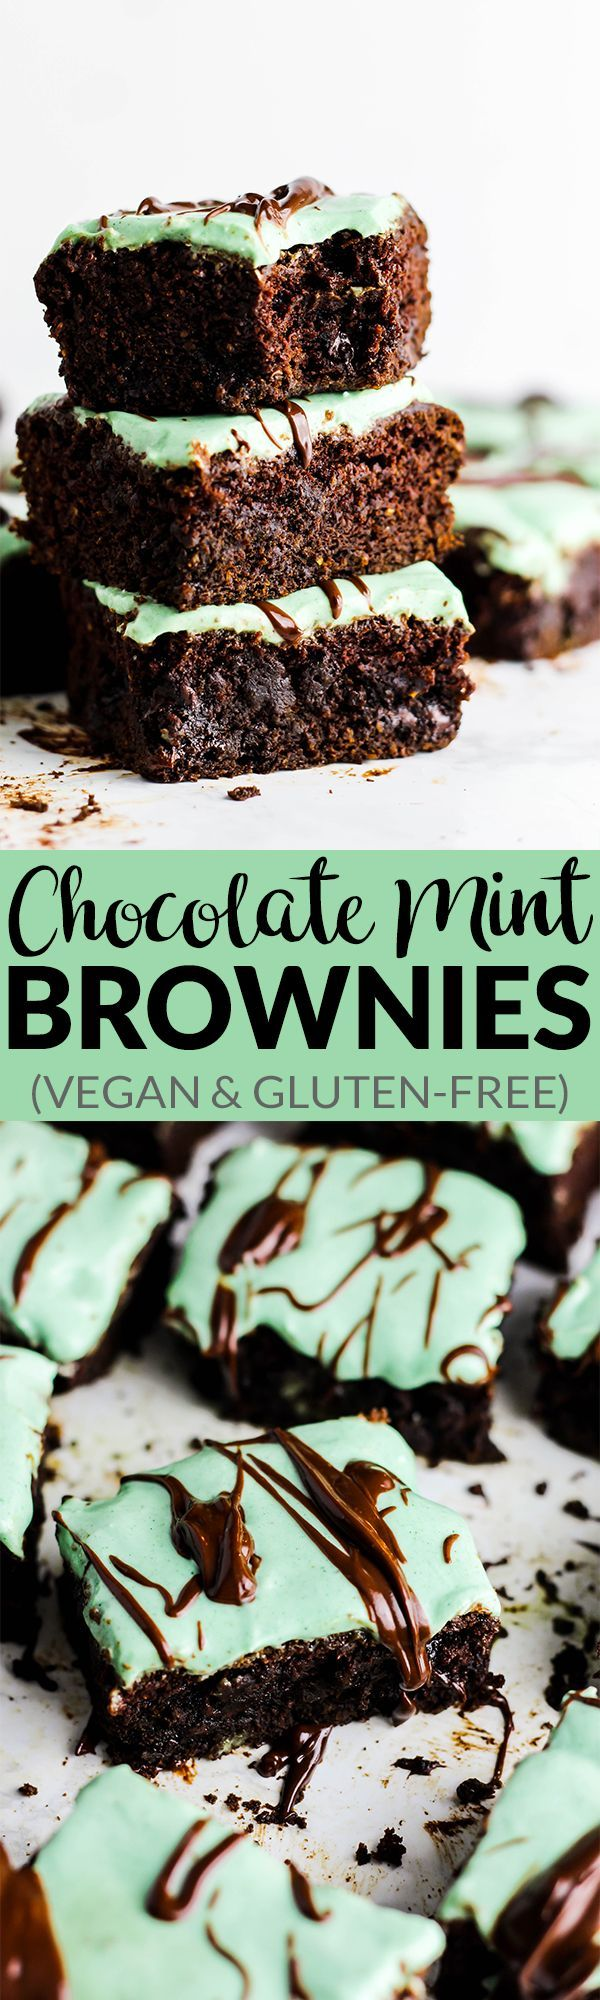 Brownies Vegan ❤︎ @VeganBeautyBible @VeganFashionBible @VeganHealthBible @IAmCarmenLee